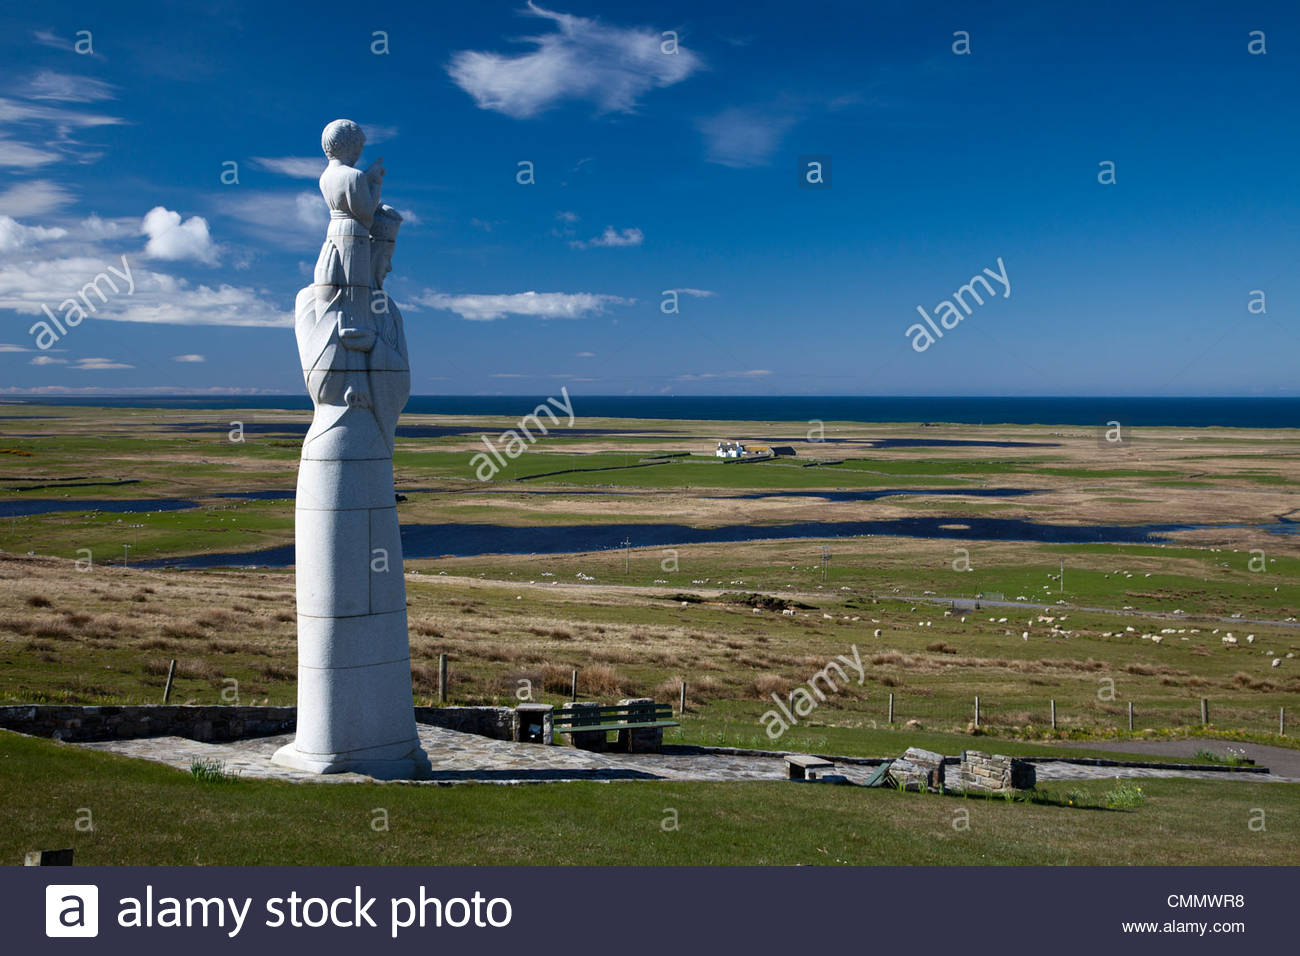 Statue of Our Lady of the Isles, Isle of South Uist, Outer Hebrides Scotland UK - Stock Image